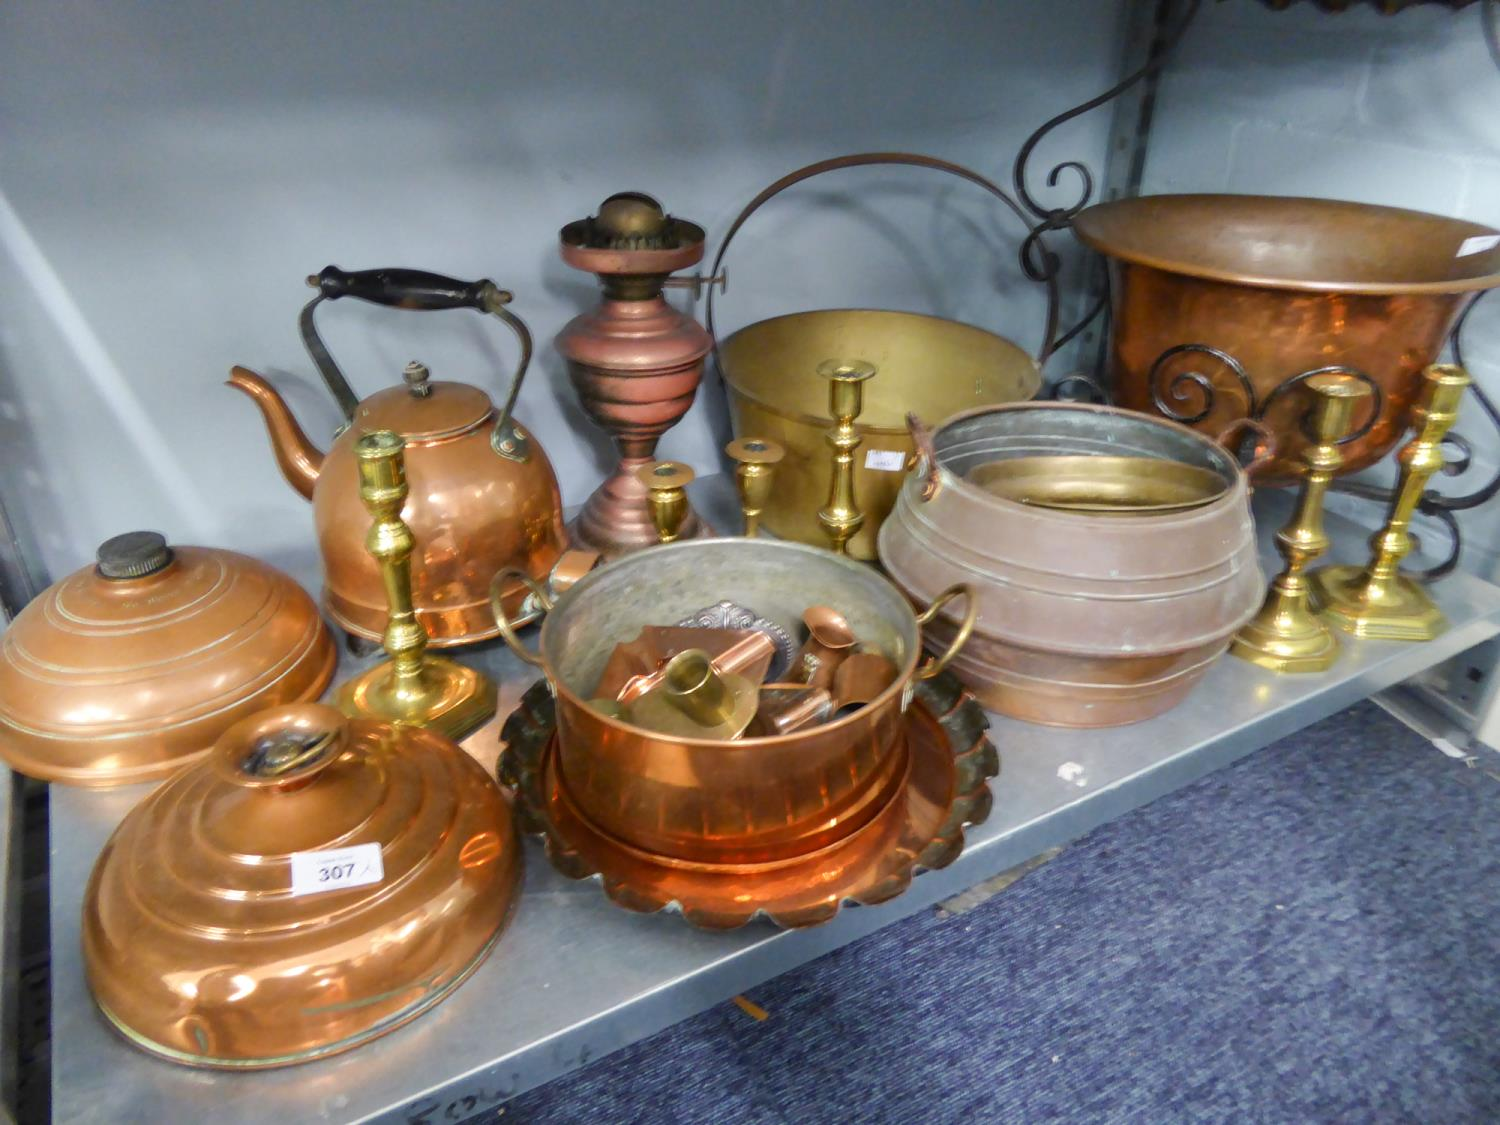 Lot 307 - A SELECTION OF BRASS AND COPPER WARES TO INCLUDE; AN EARLY ELECTRIC COPPER KETTLE, PRESERVE PAN,